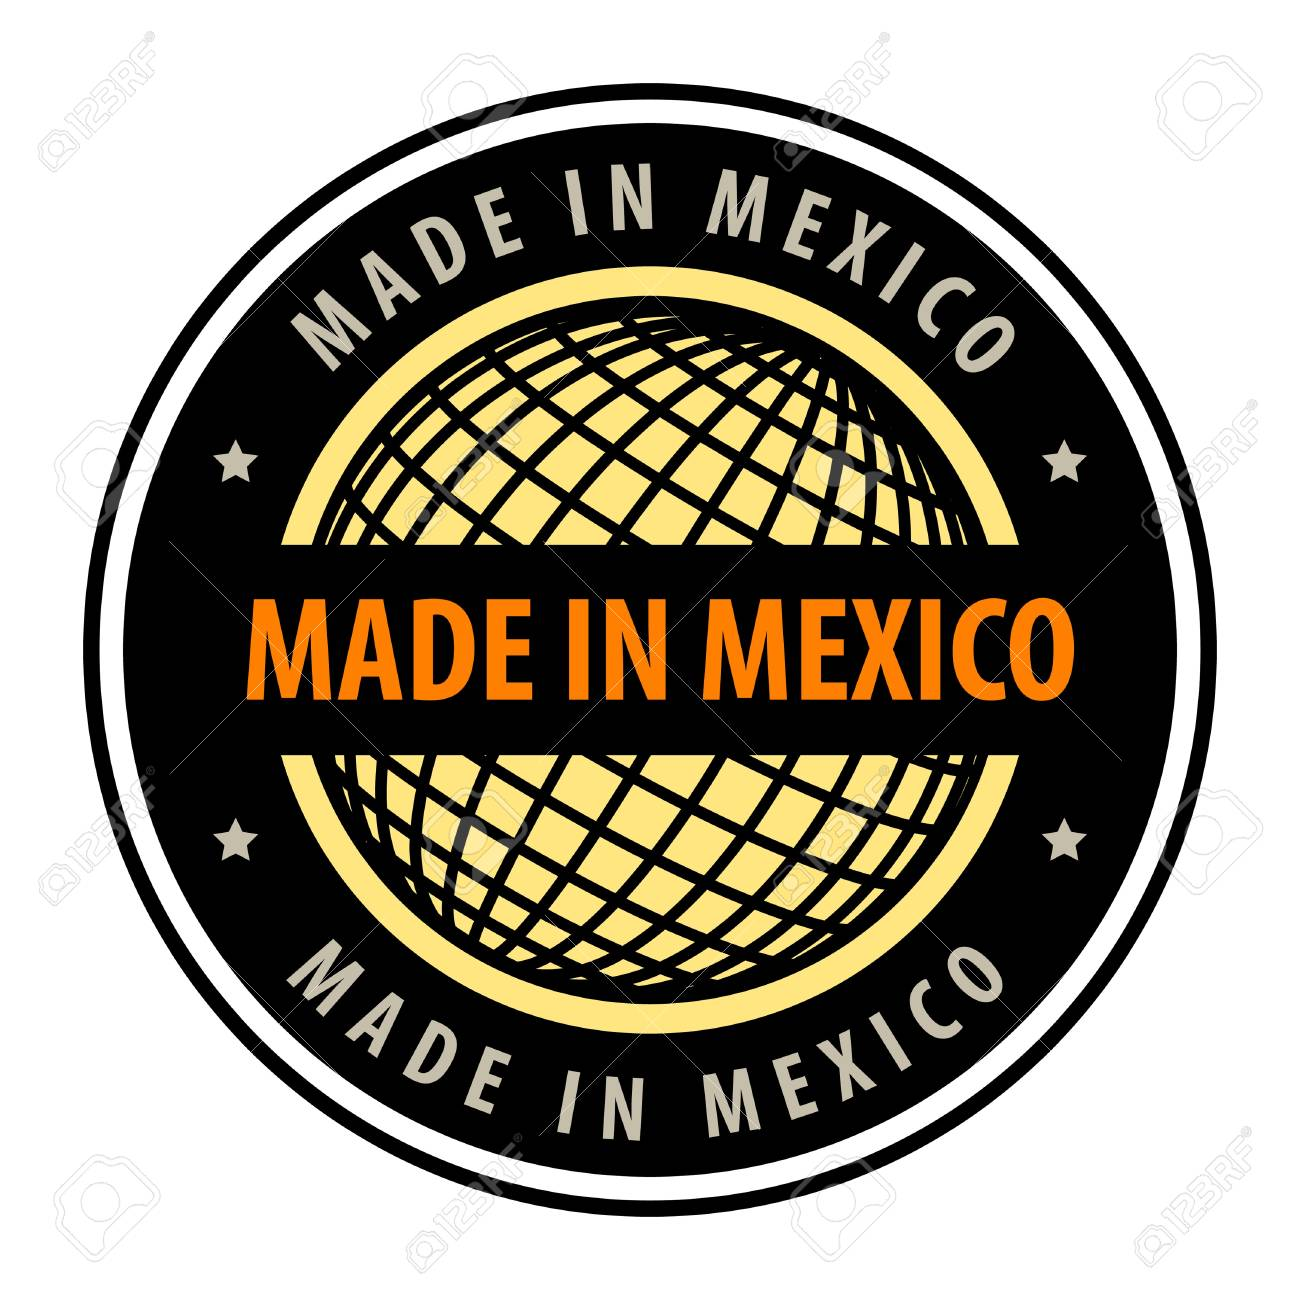 Made in mexico label Stock Vector - 13946189